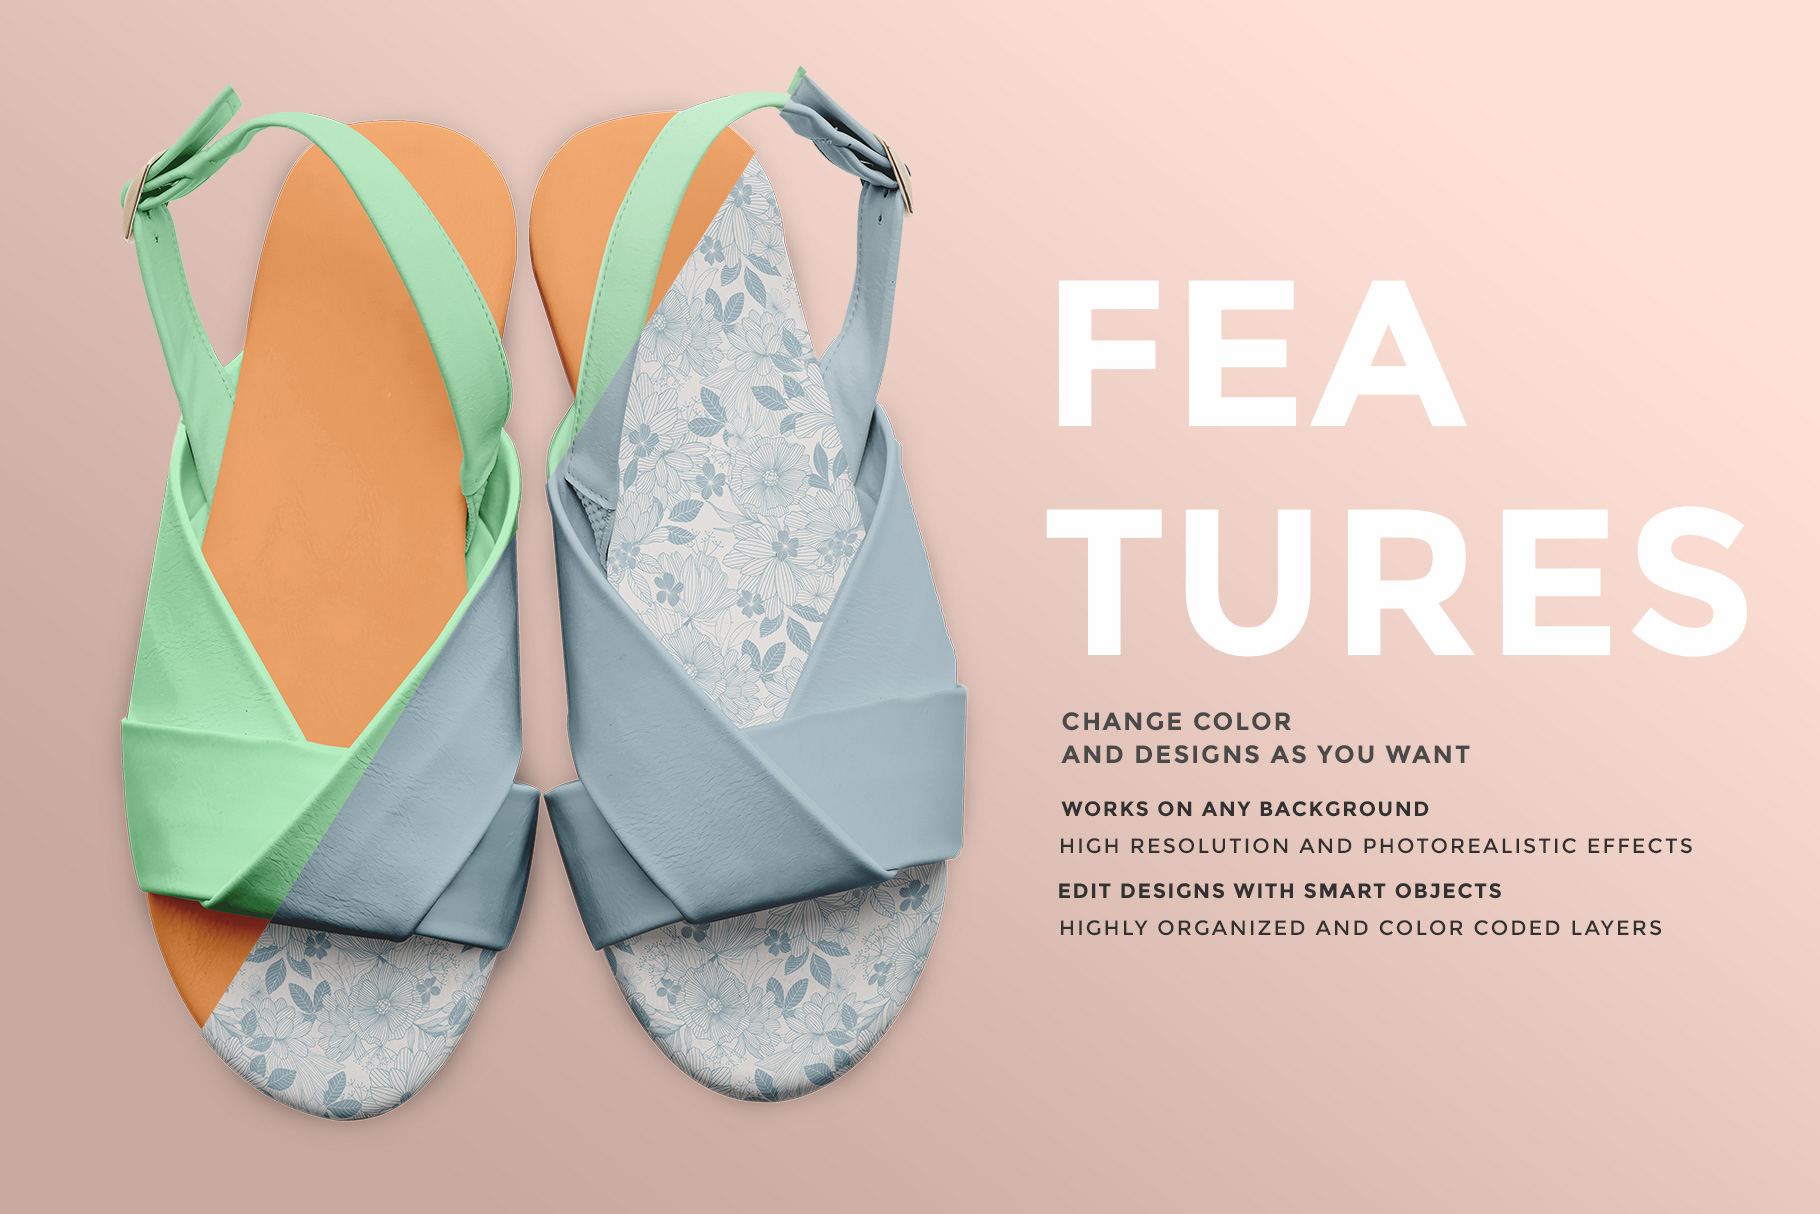 features of the women's slingback sandal mockup